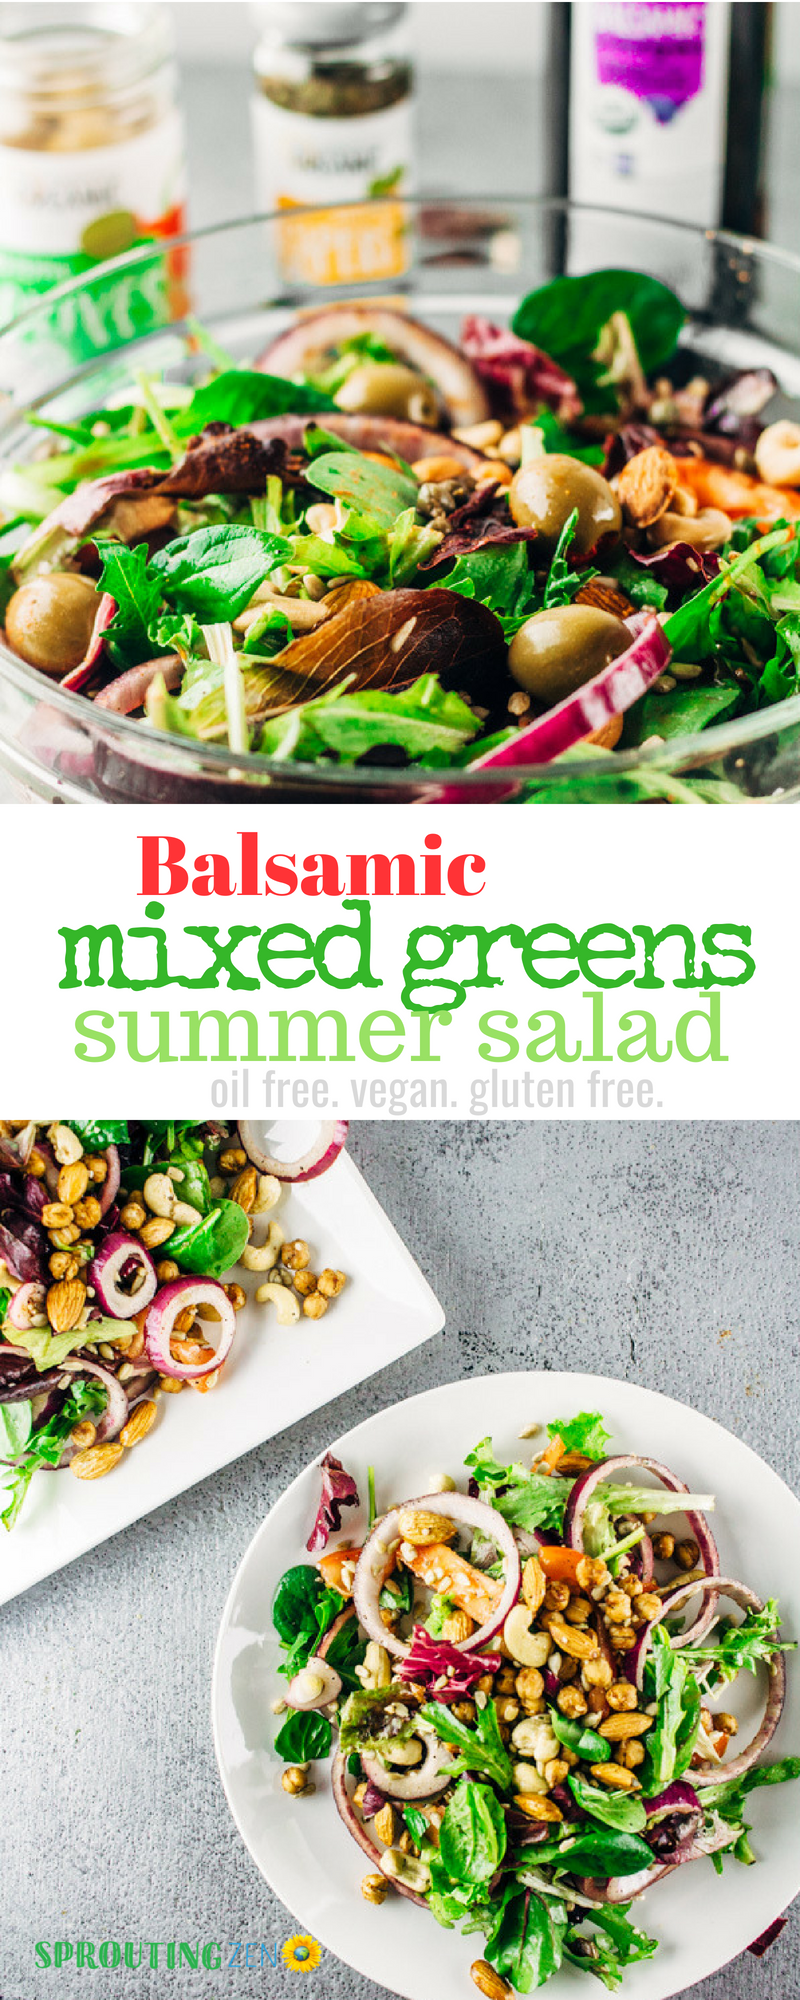 A feel-good balsamic Mixed Greens Summer Salad done right. #plantbased #vegan #summersalads